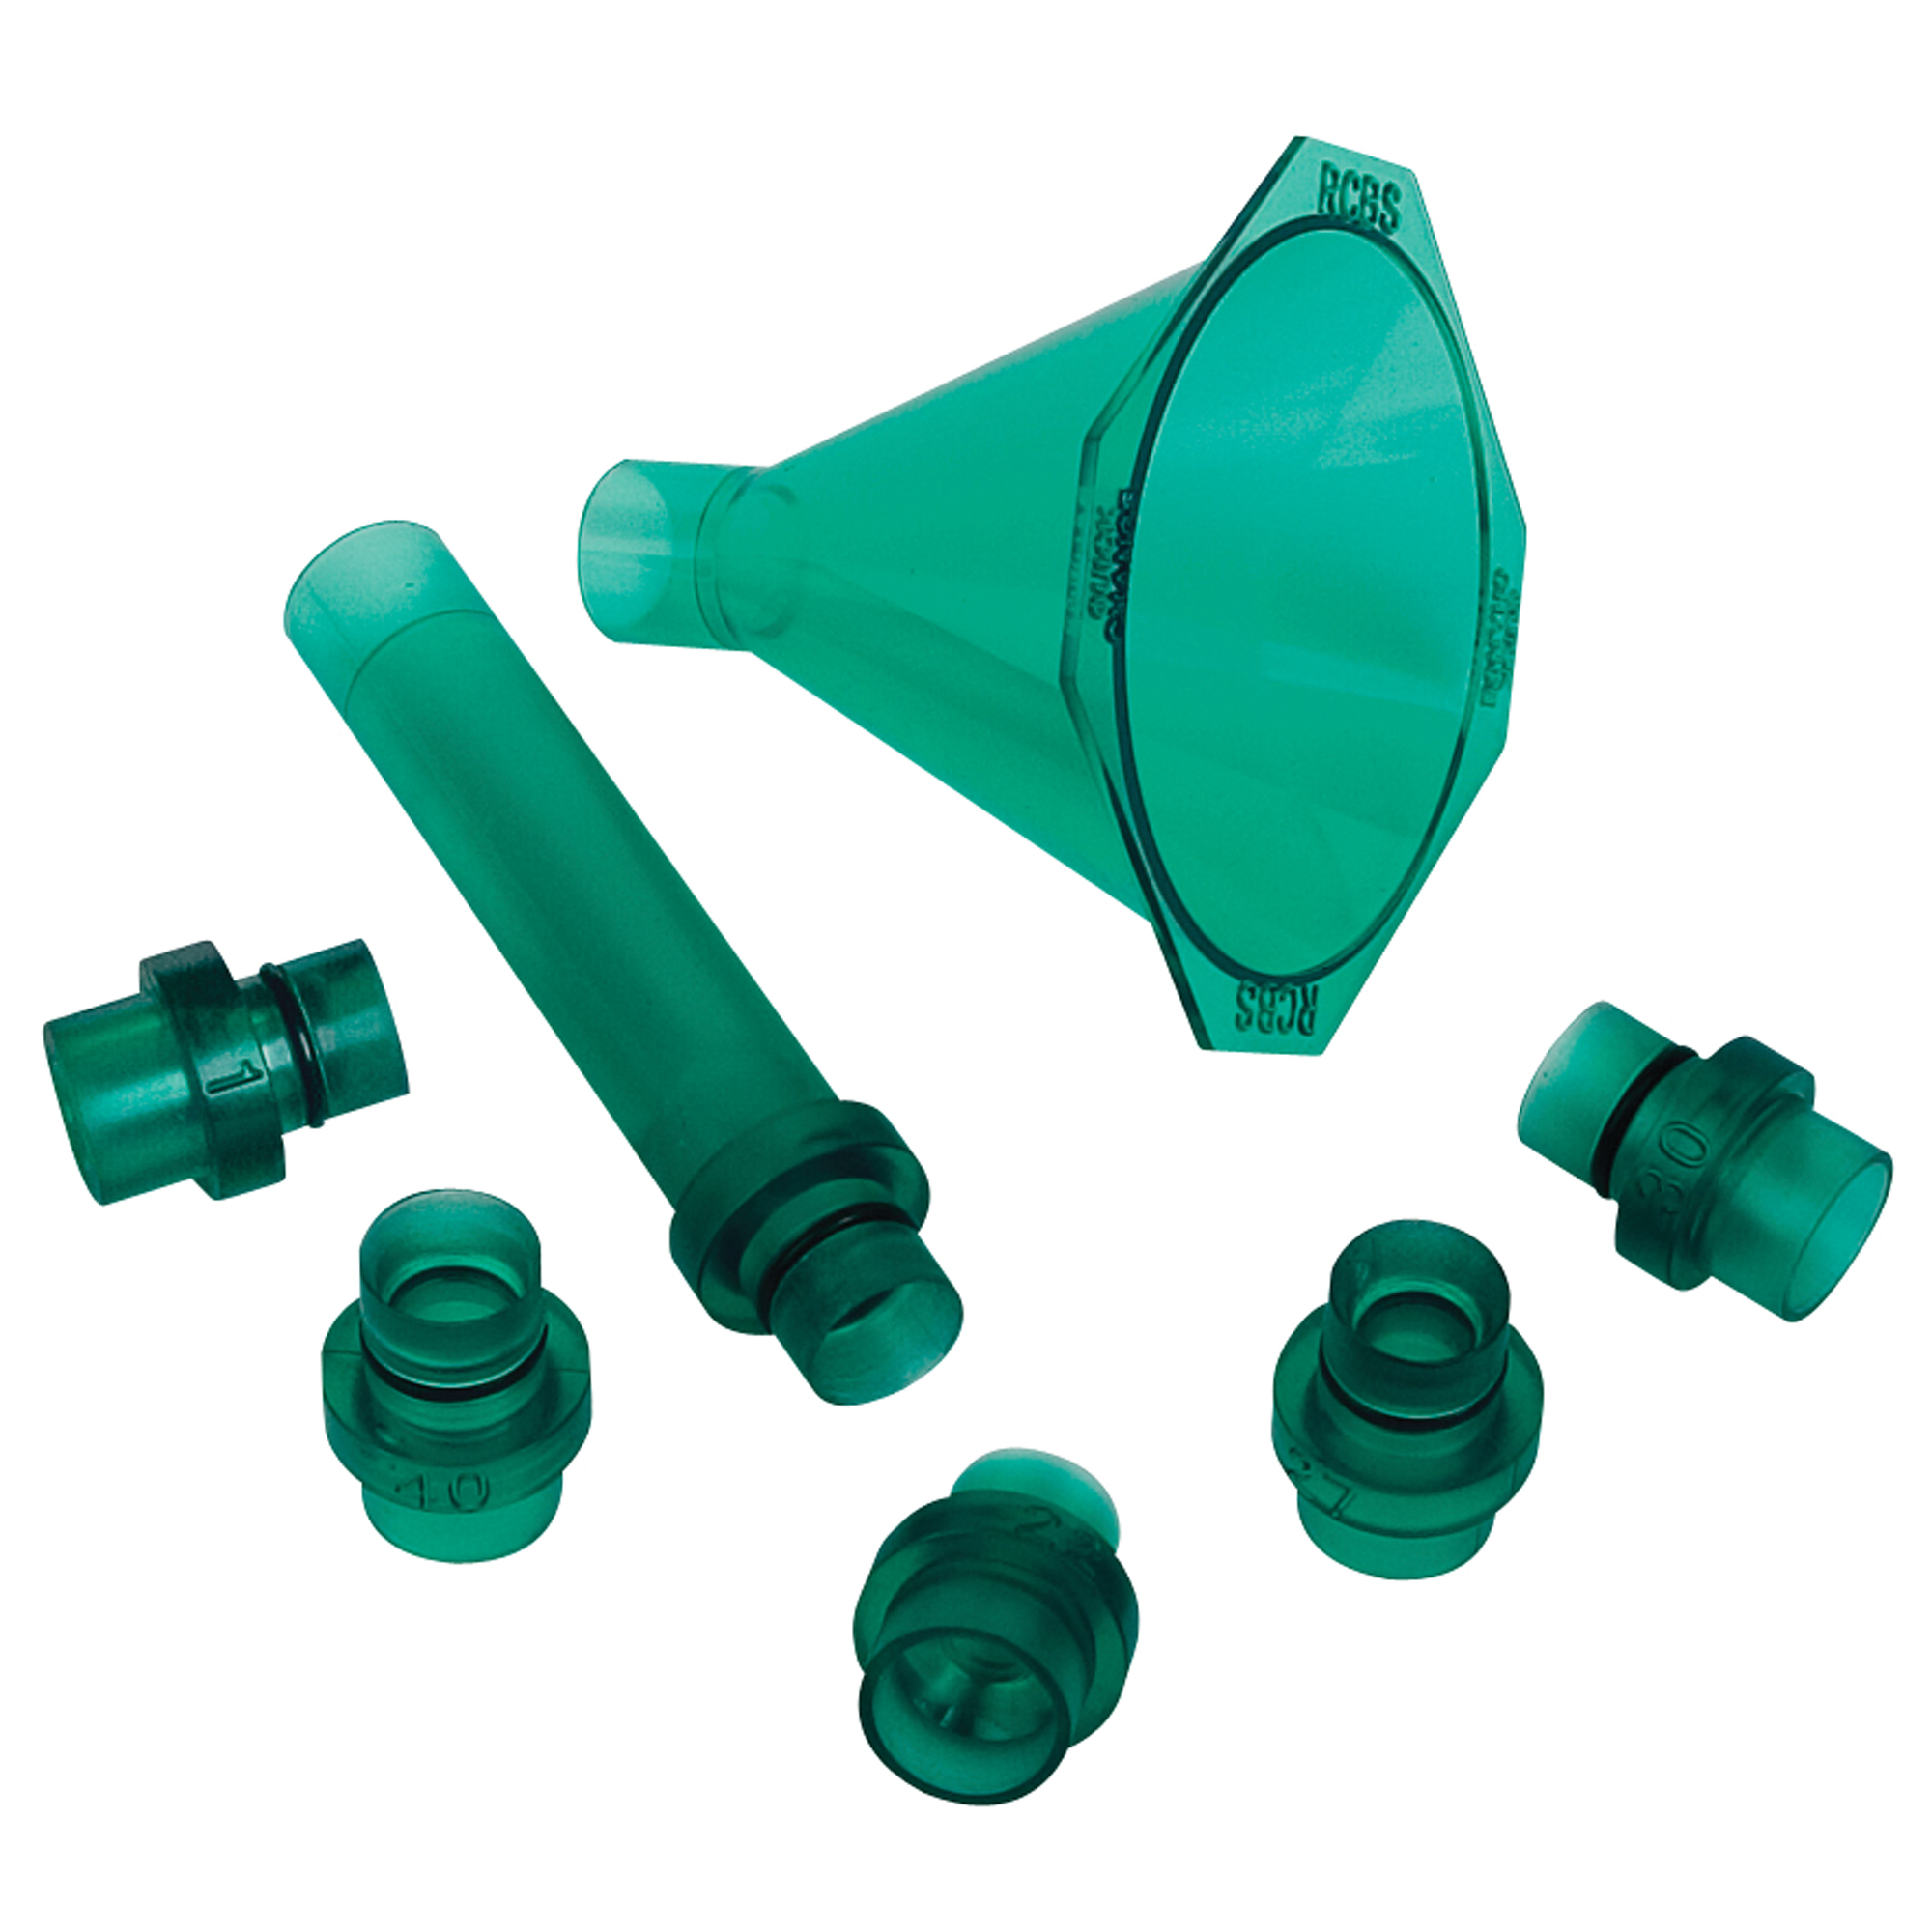 """The Quick Change Powder Funnel features adapters that are supported by the body of the case and allow reloaders to choose the optimum powder flow. The 4-inch drop tube helps get that compressed powder charge into the case. The drop tubes are stackable so reloaders can increase the drop length if necessary. With the adapters removed"""" the powder funnel allows reloaders to return powder into the original container quickly."""